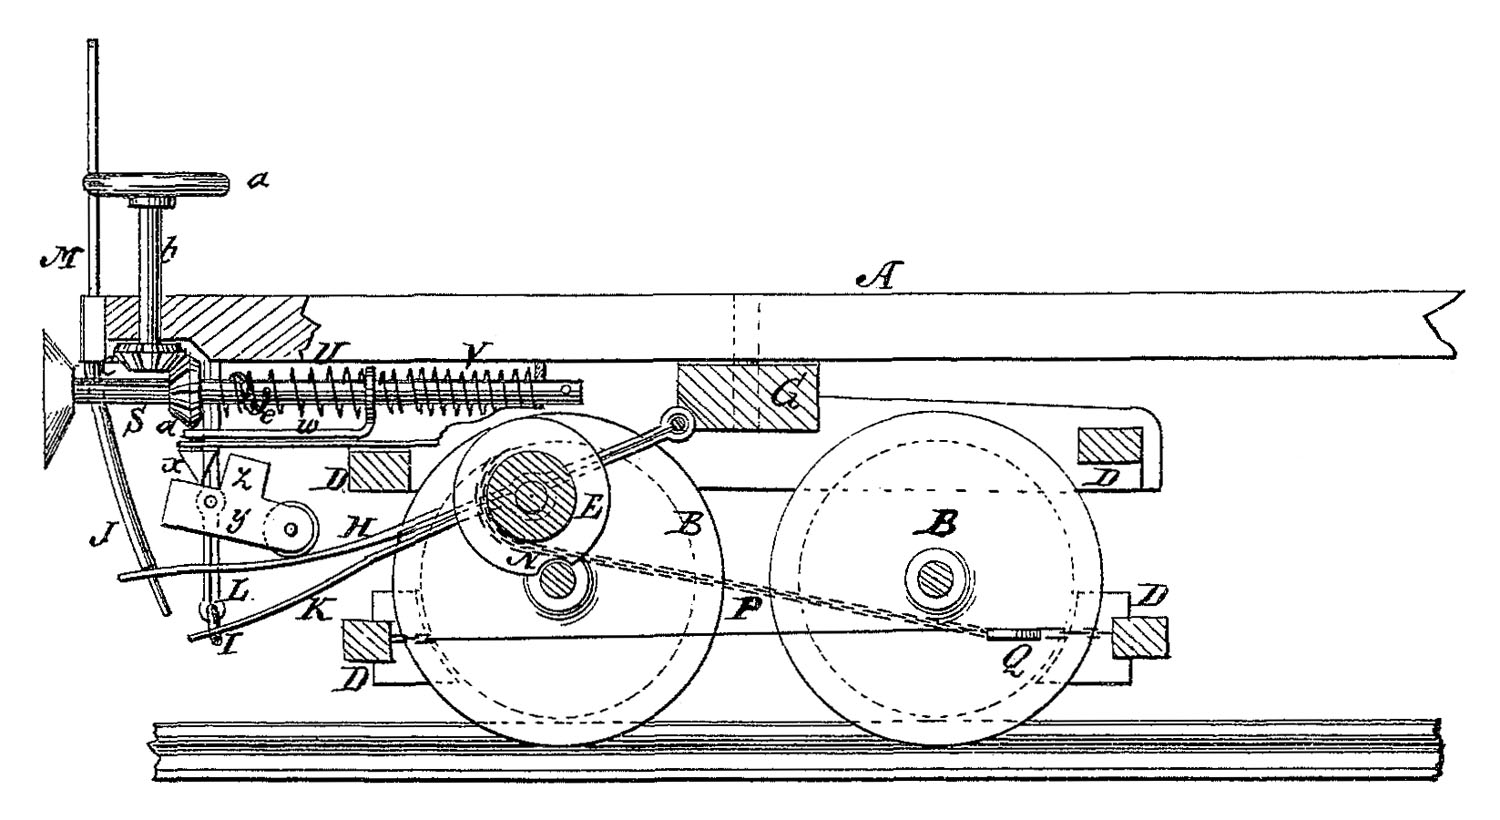 hight resolution of diagram for an automatic brake patented by luther adams in 1873